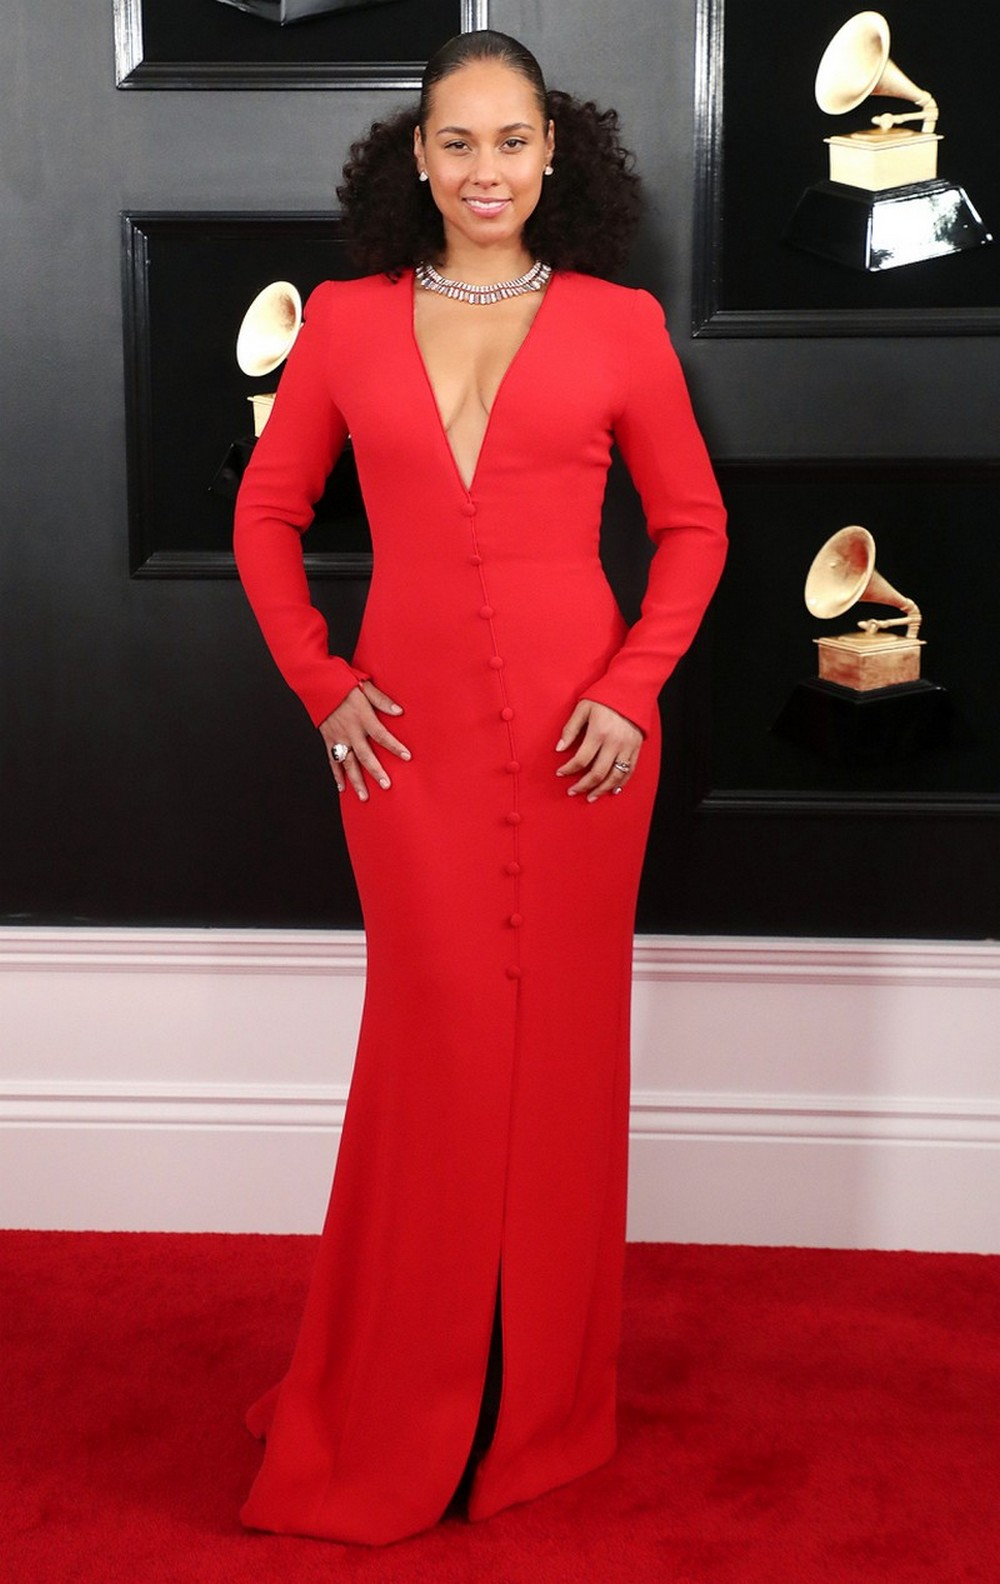 CovetED Reveals The Best High-Fashion Looks Of The 2019 Grammys 2019 grammys CovetED Reveals The Best High-Fashion Looks Of The 2019 Grammys CovetED Reveals The Best High Fashion Looks Of The 2019 Grammys